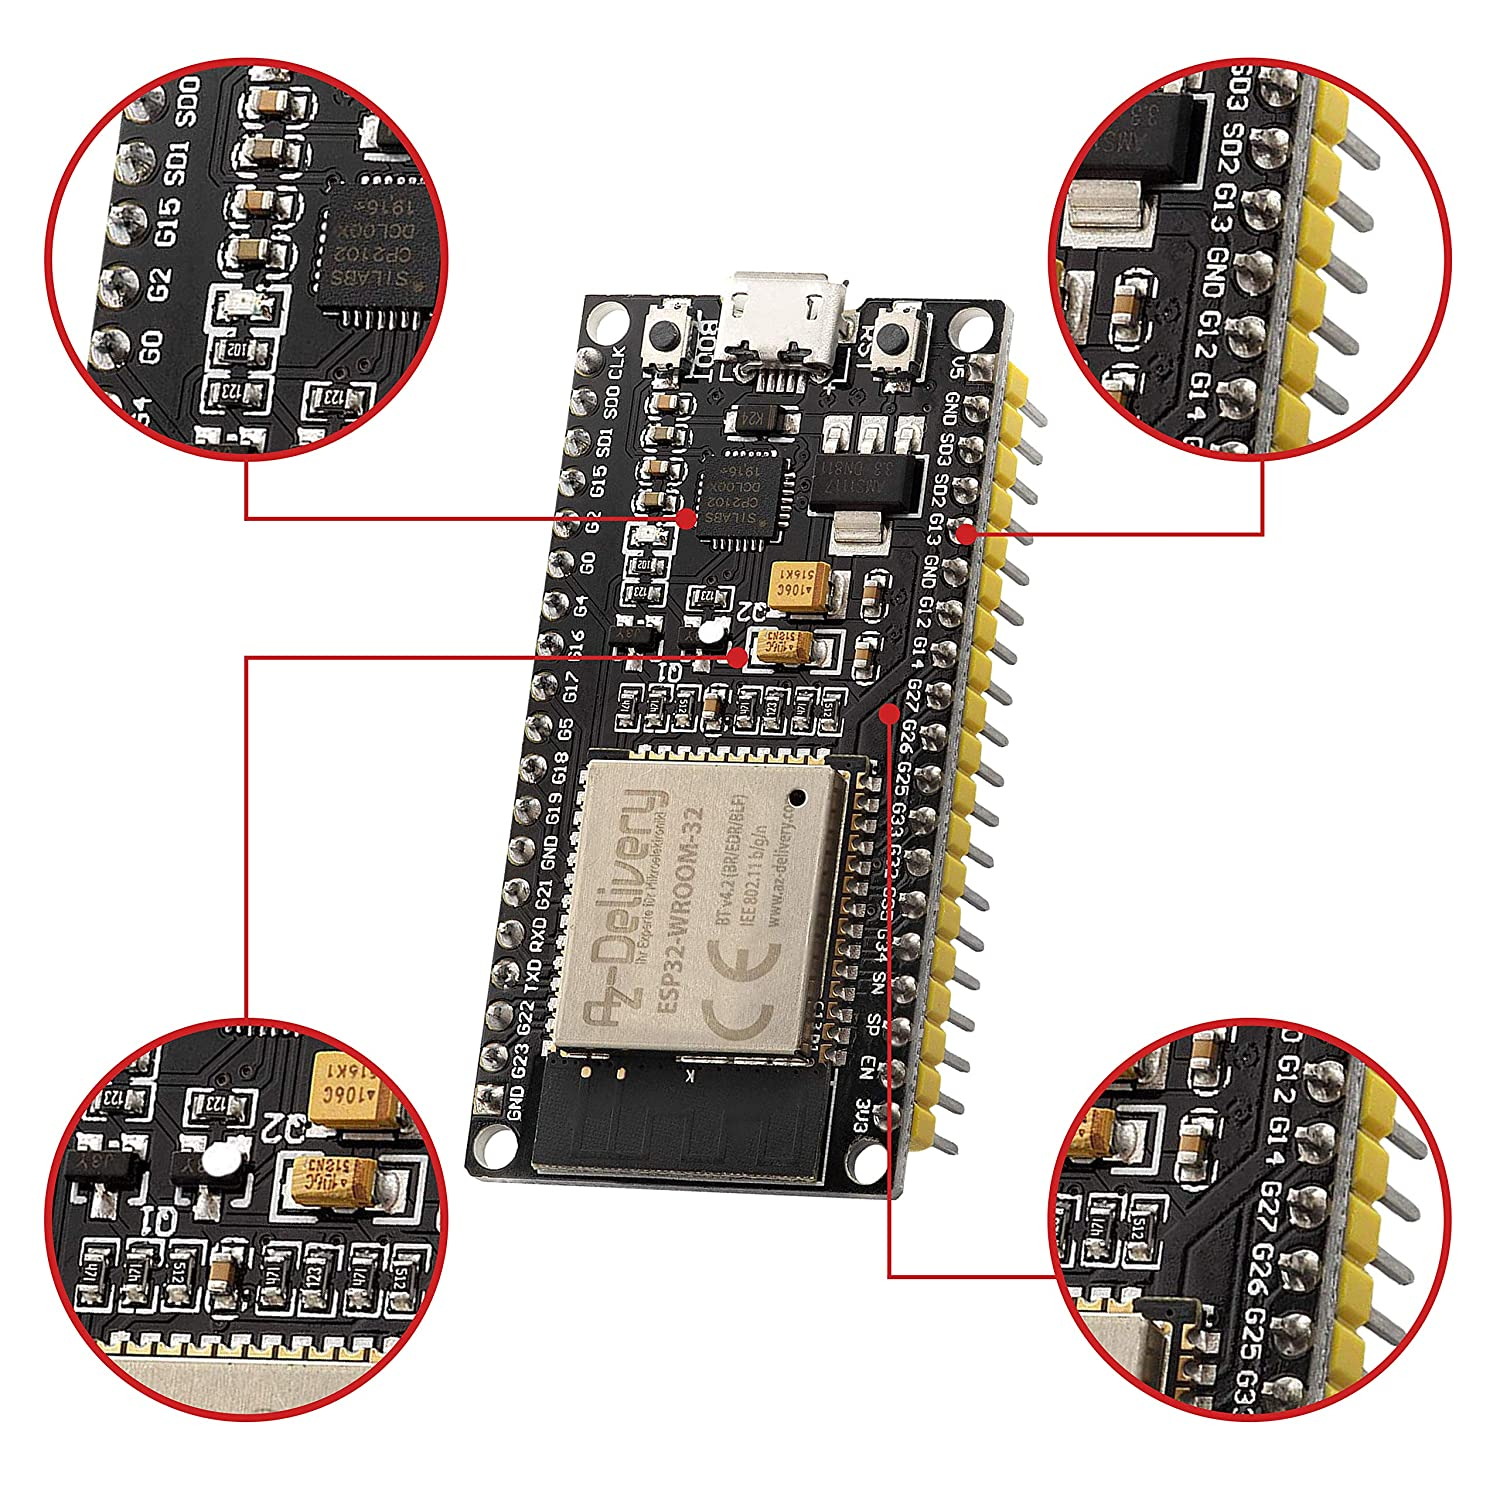 Azdelivery Esp32 Nodemcu Module Wlan Wifi Dev Kit C Development Board With Cp2102 Successor Model To Esp8266 And Includes E Book Business Industry Science